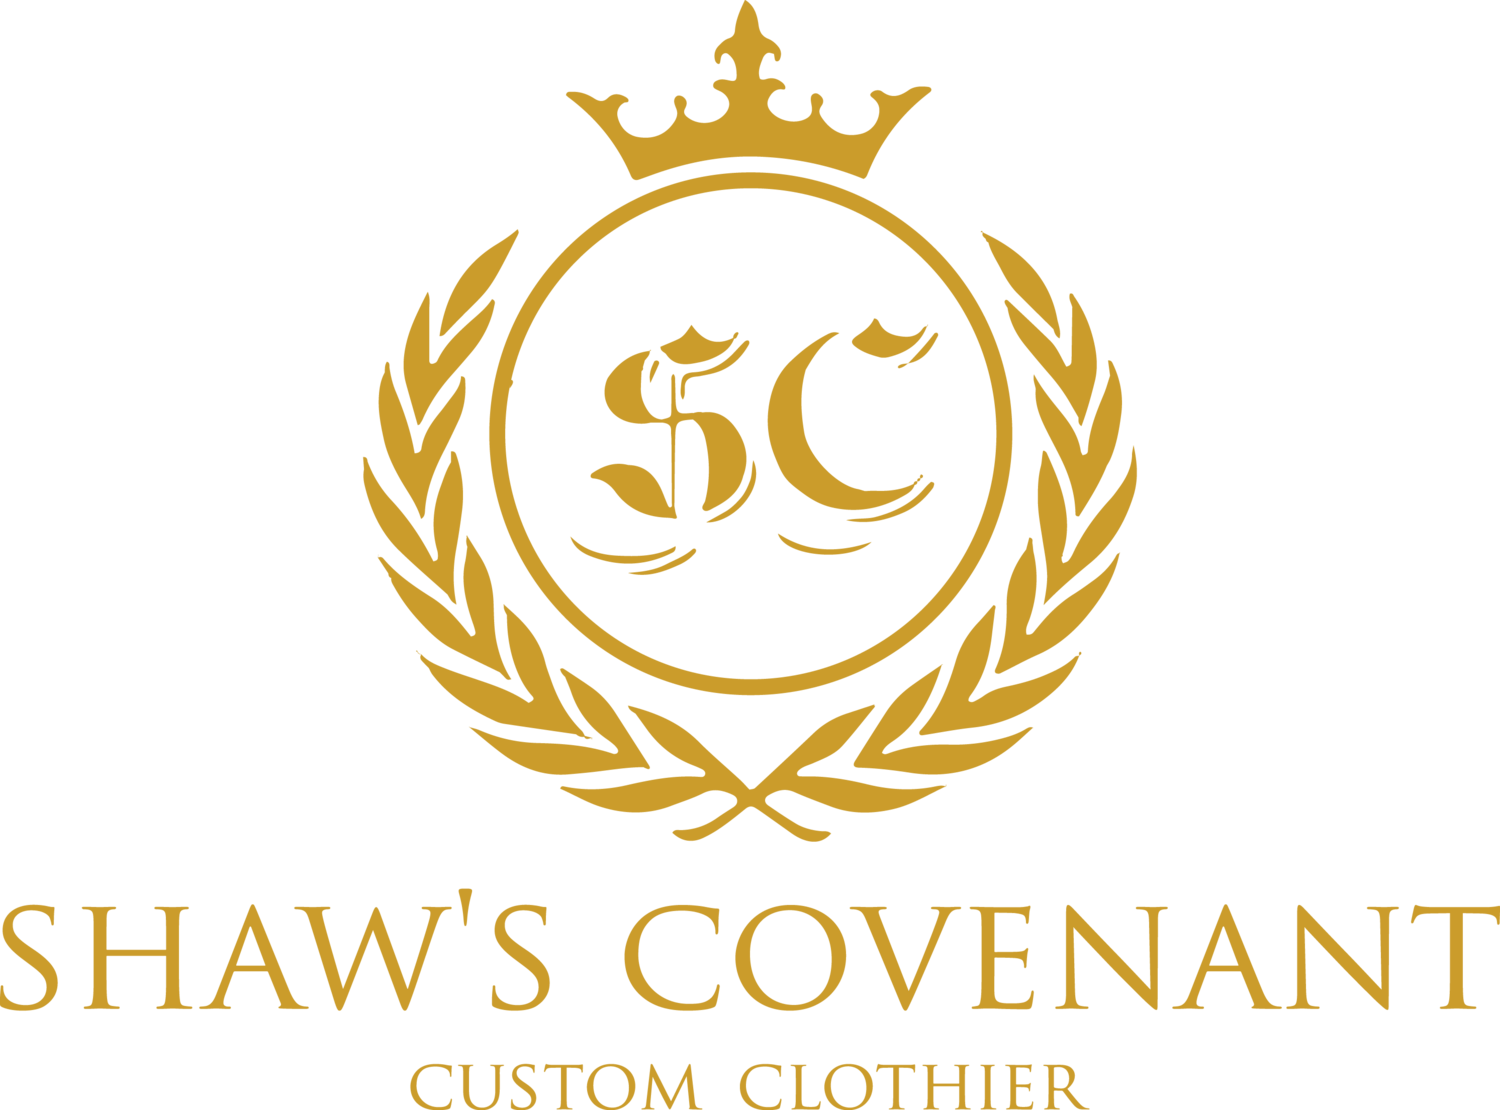 Shaw's Covenant Custom Clothier